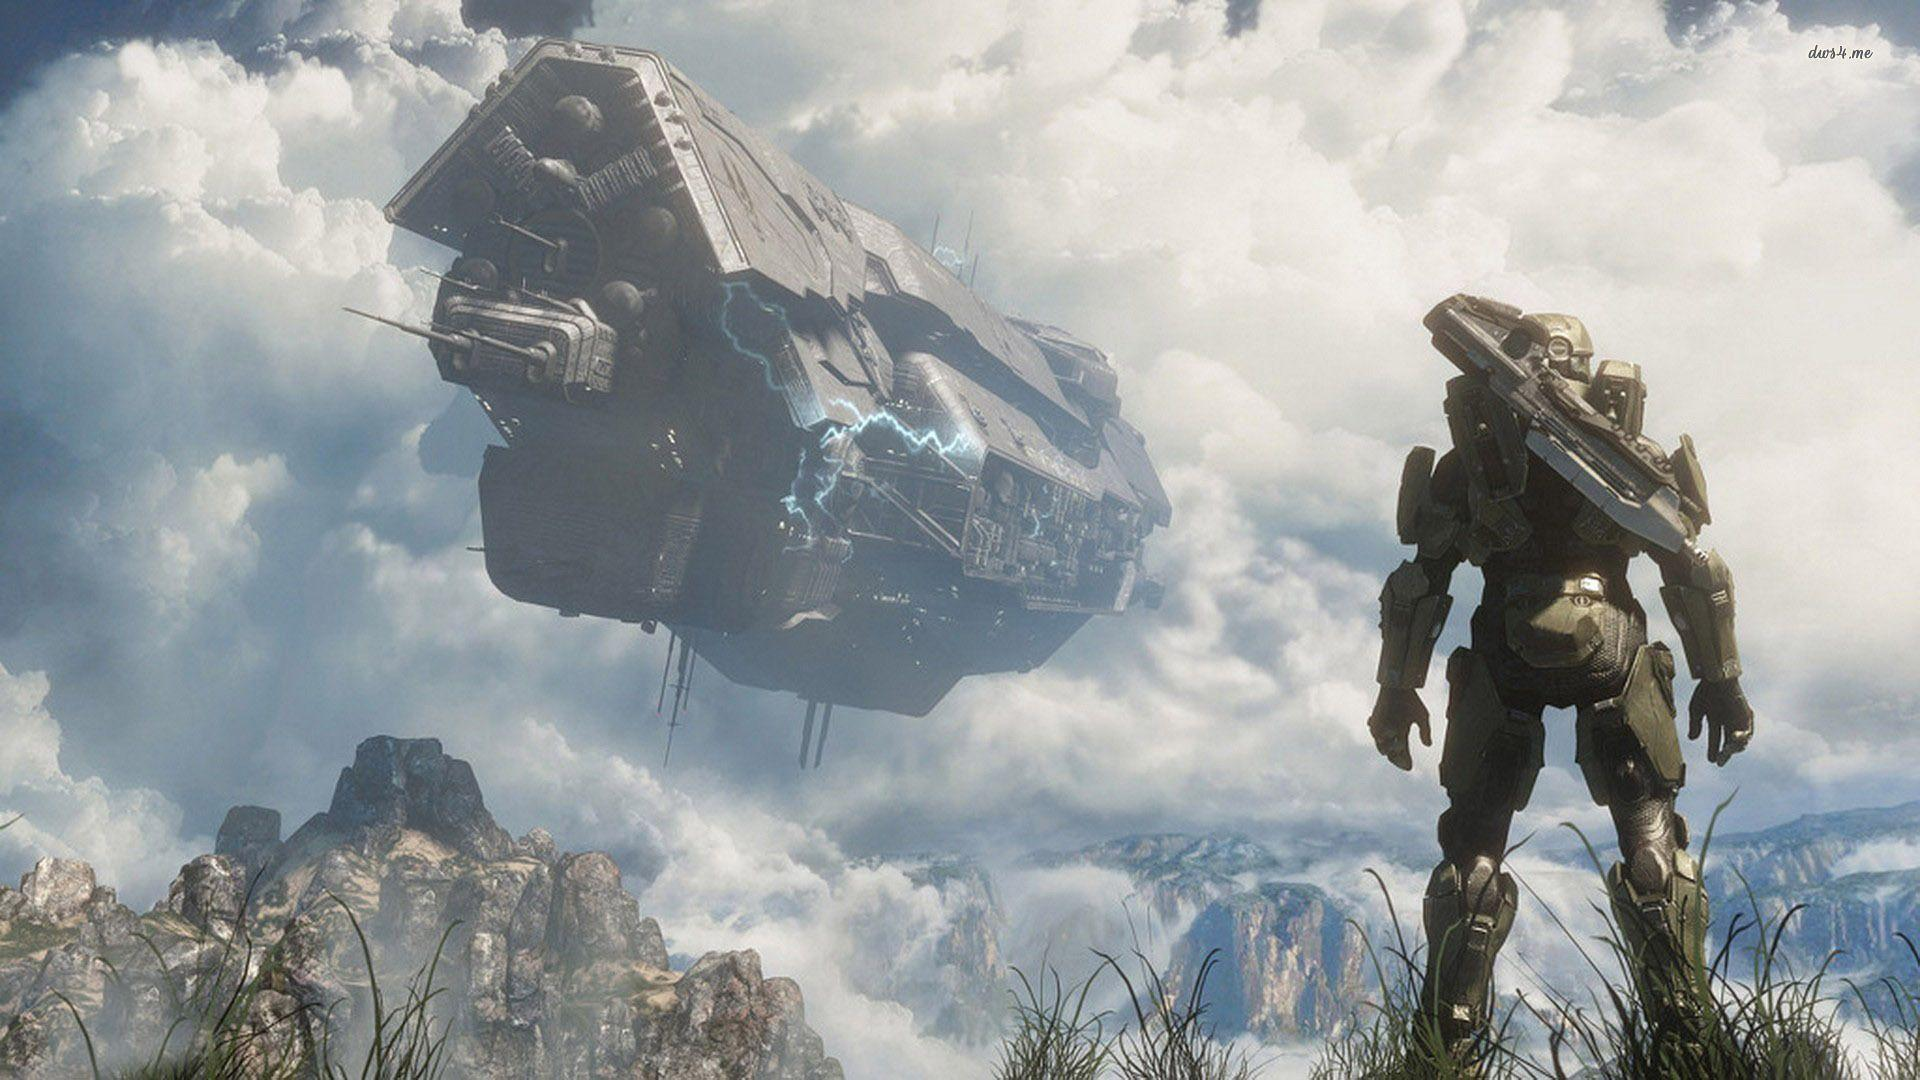 Halo 4 Wallpapers - Wallpaper Cave